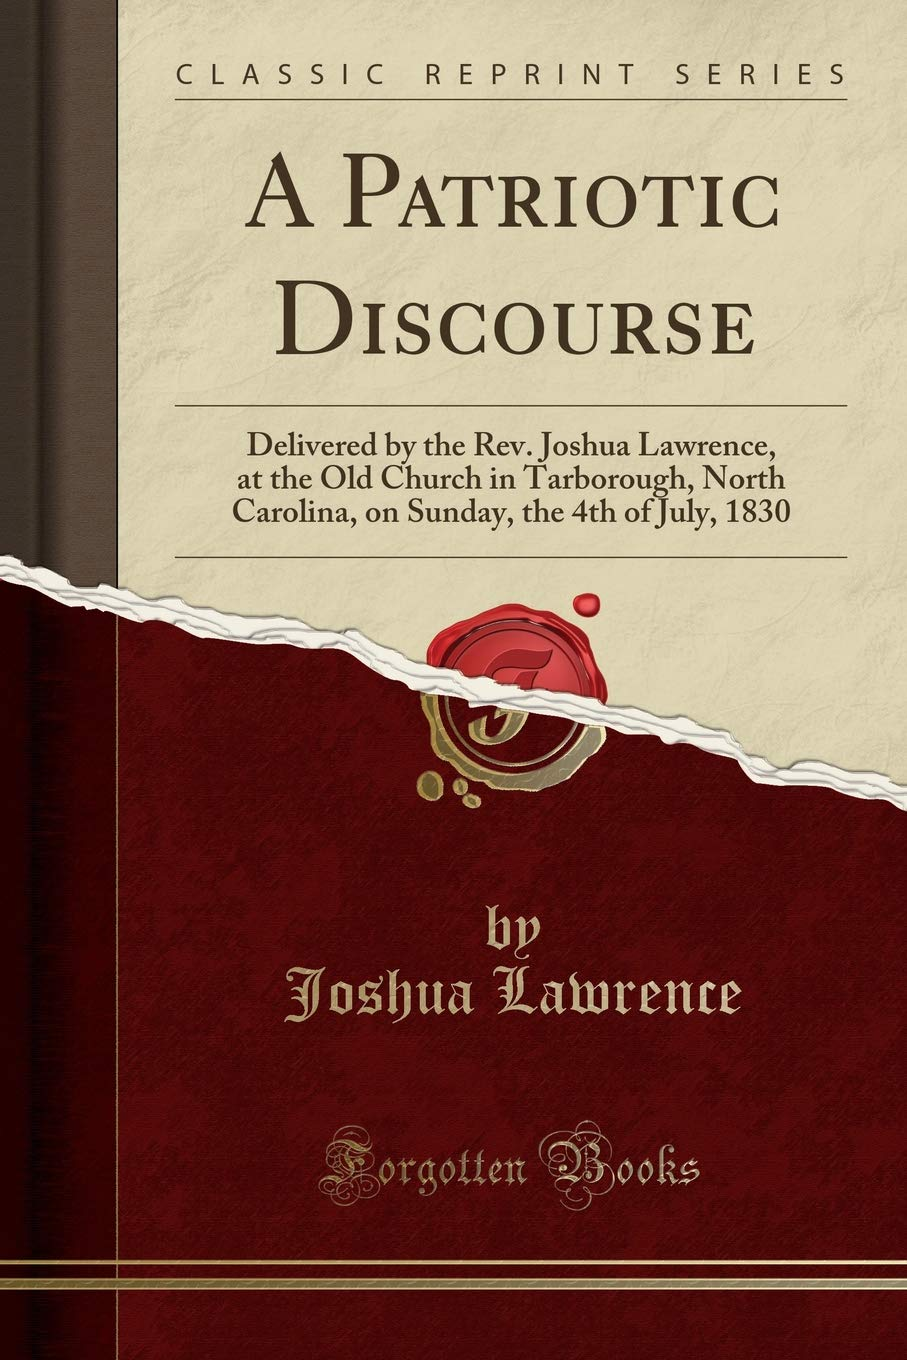 A Patriotic Discourse: Delivered by the Rev. Joshua Lawrence, at the Old Church in Tarborough, North Carolina, on Sunday, the 4th of July, 1830 (Classic Reprint) PDF